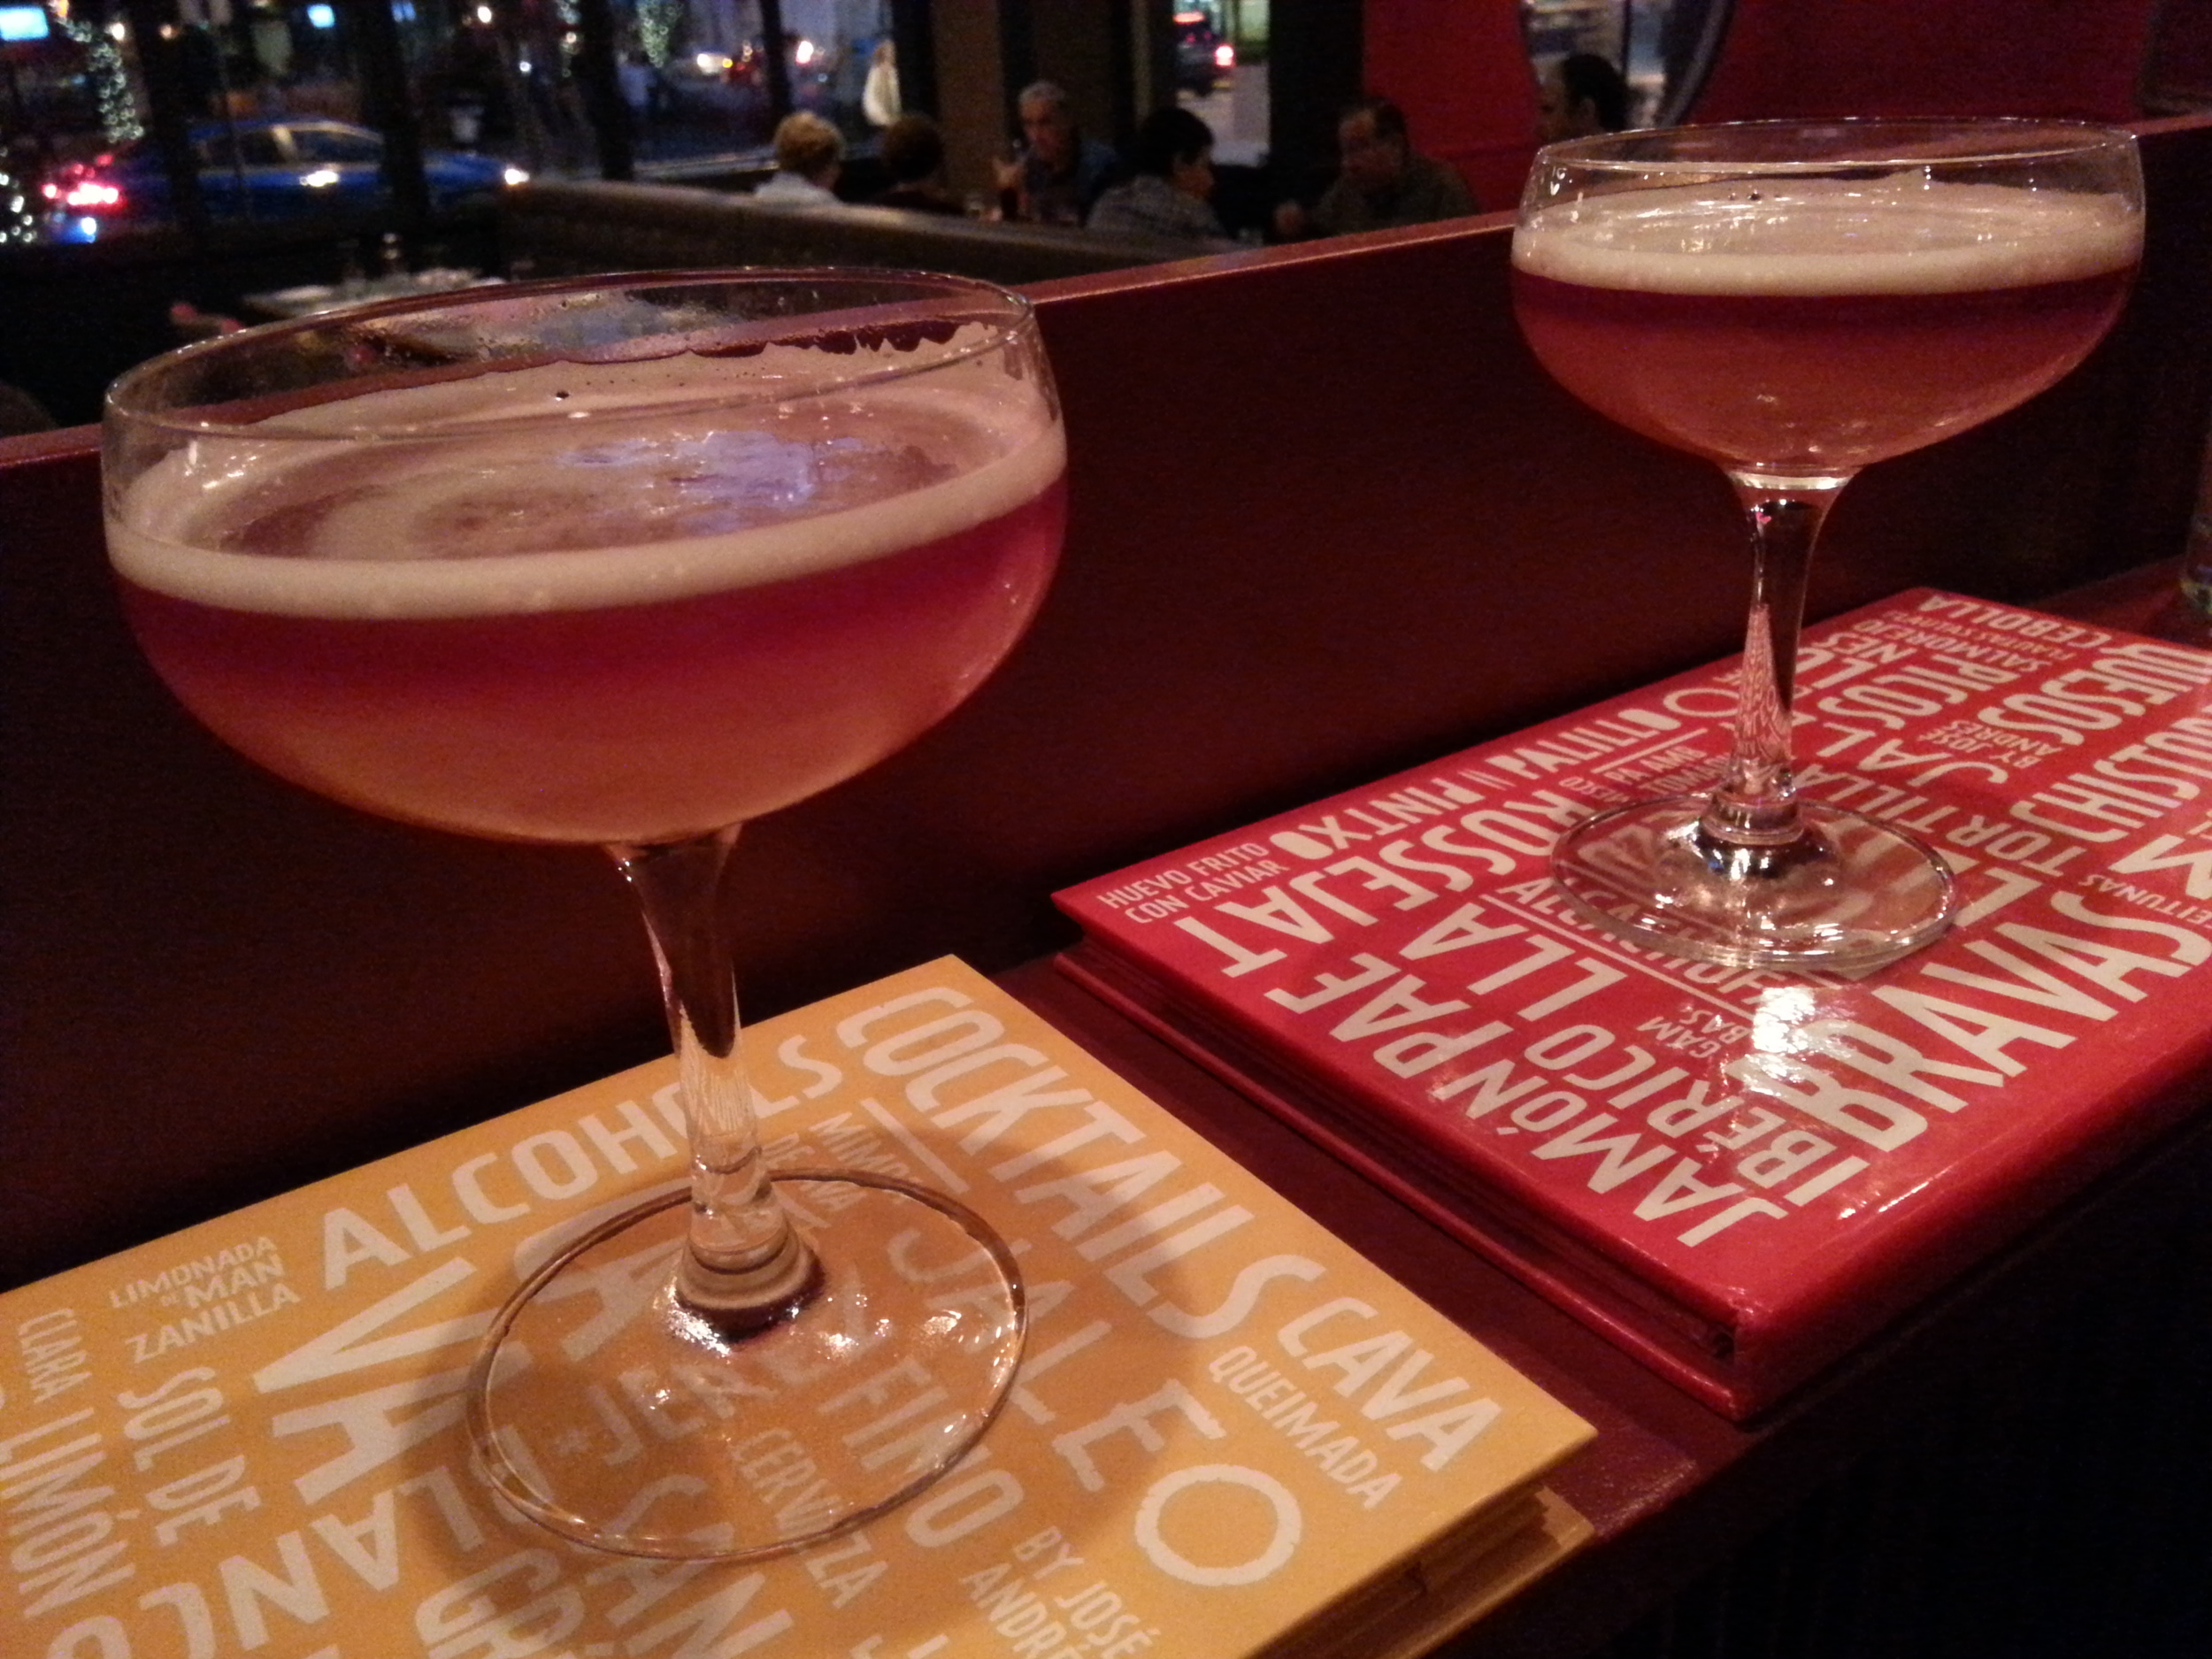 A New York Sour from Jaleo [rye, fresh lemon juice, simple syrup and a float of red wine]